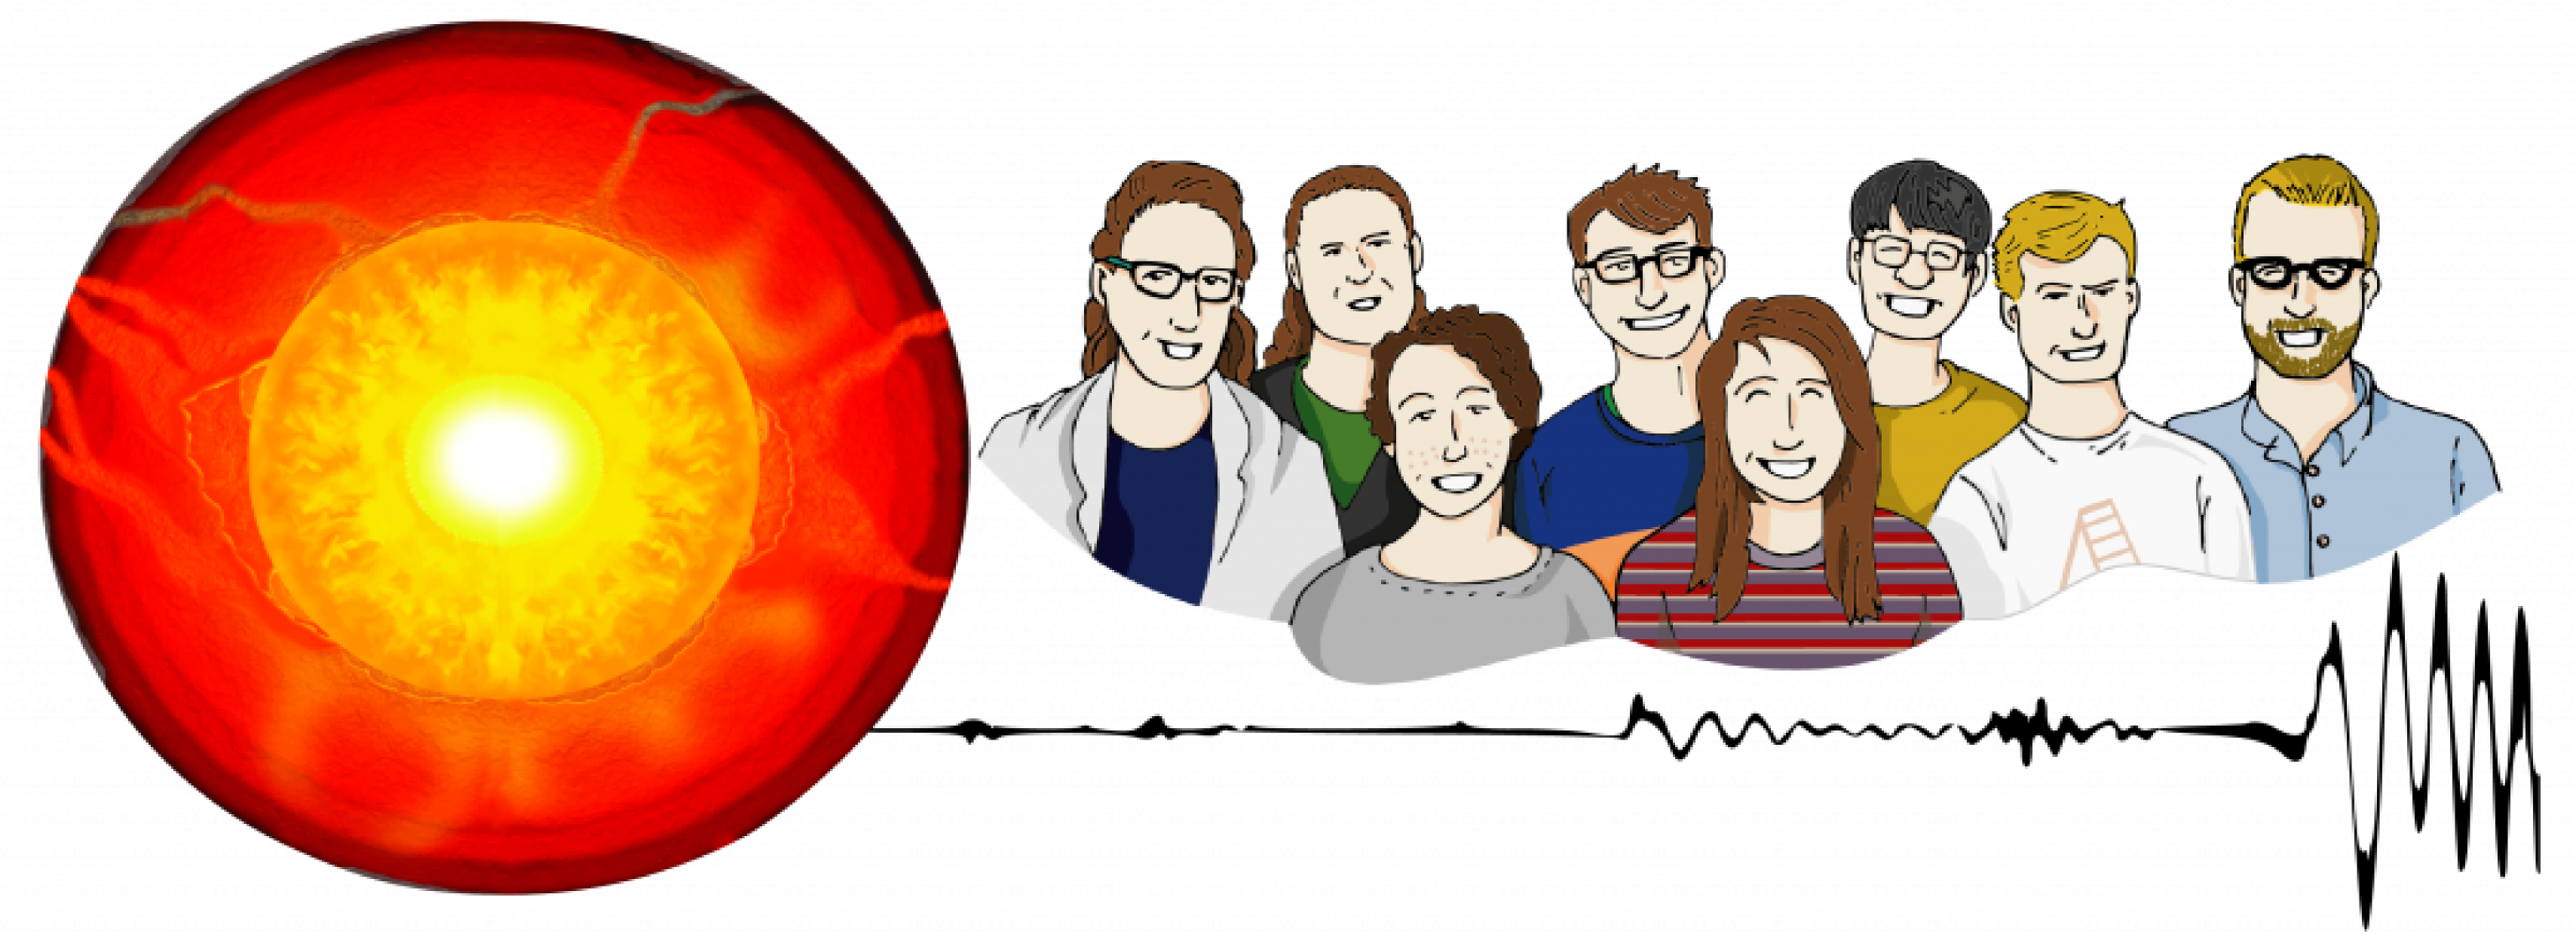 Illustration showing members of the Deep Earth Explorers research team alongside a schematic of the Earth's interior and a seismic wave